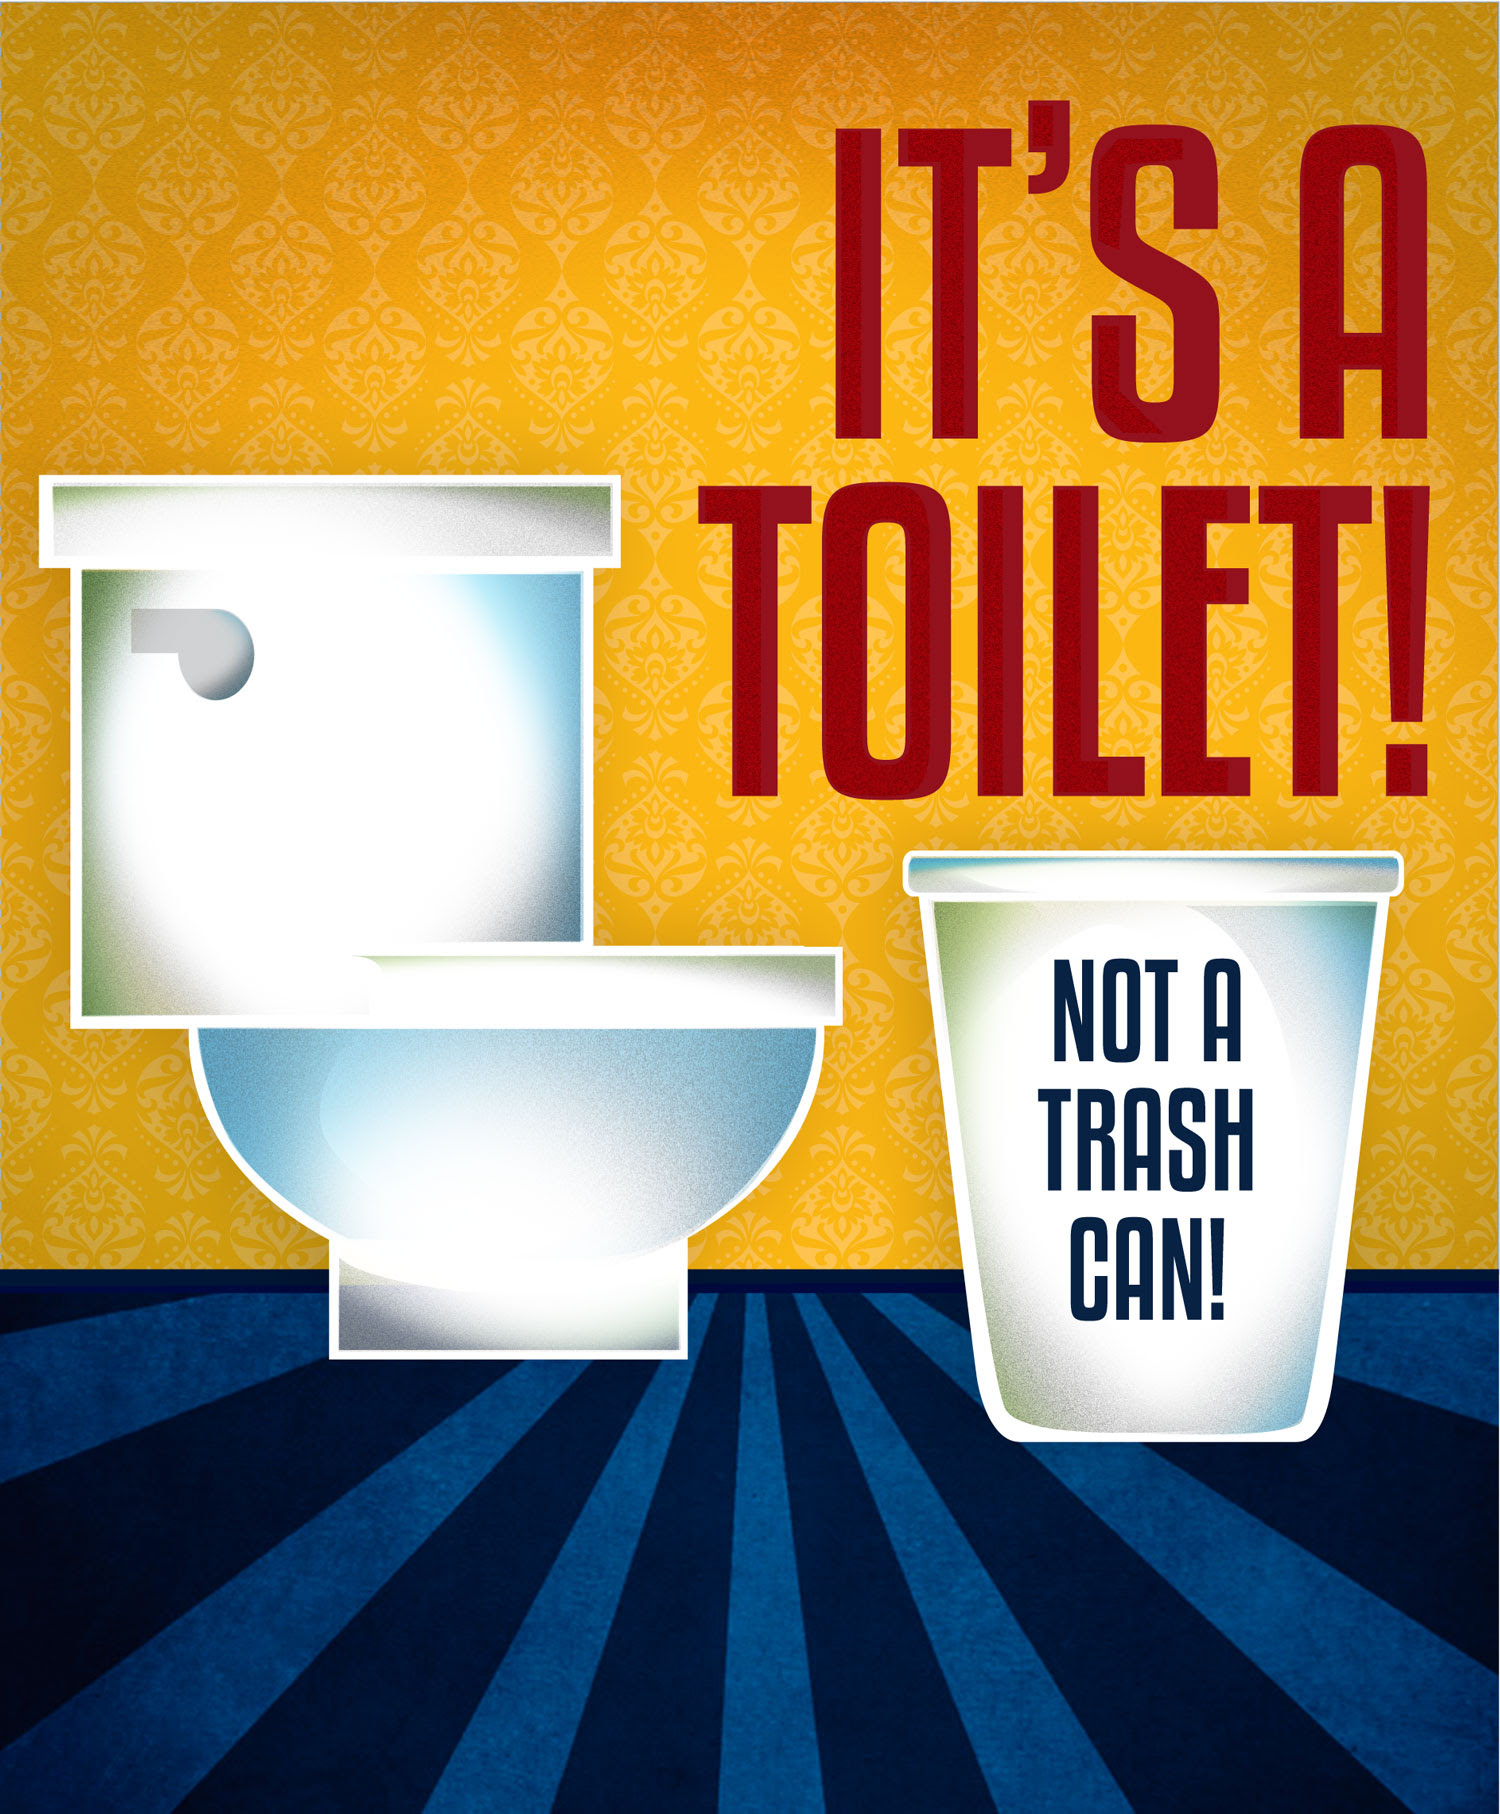 MWRA - It's a Toilet, Not a Trash Can!